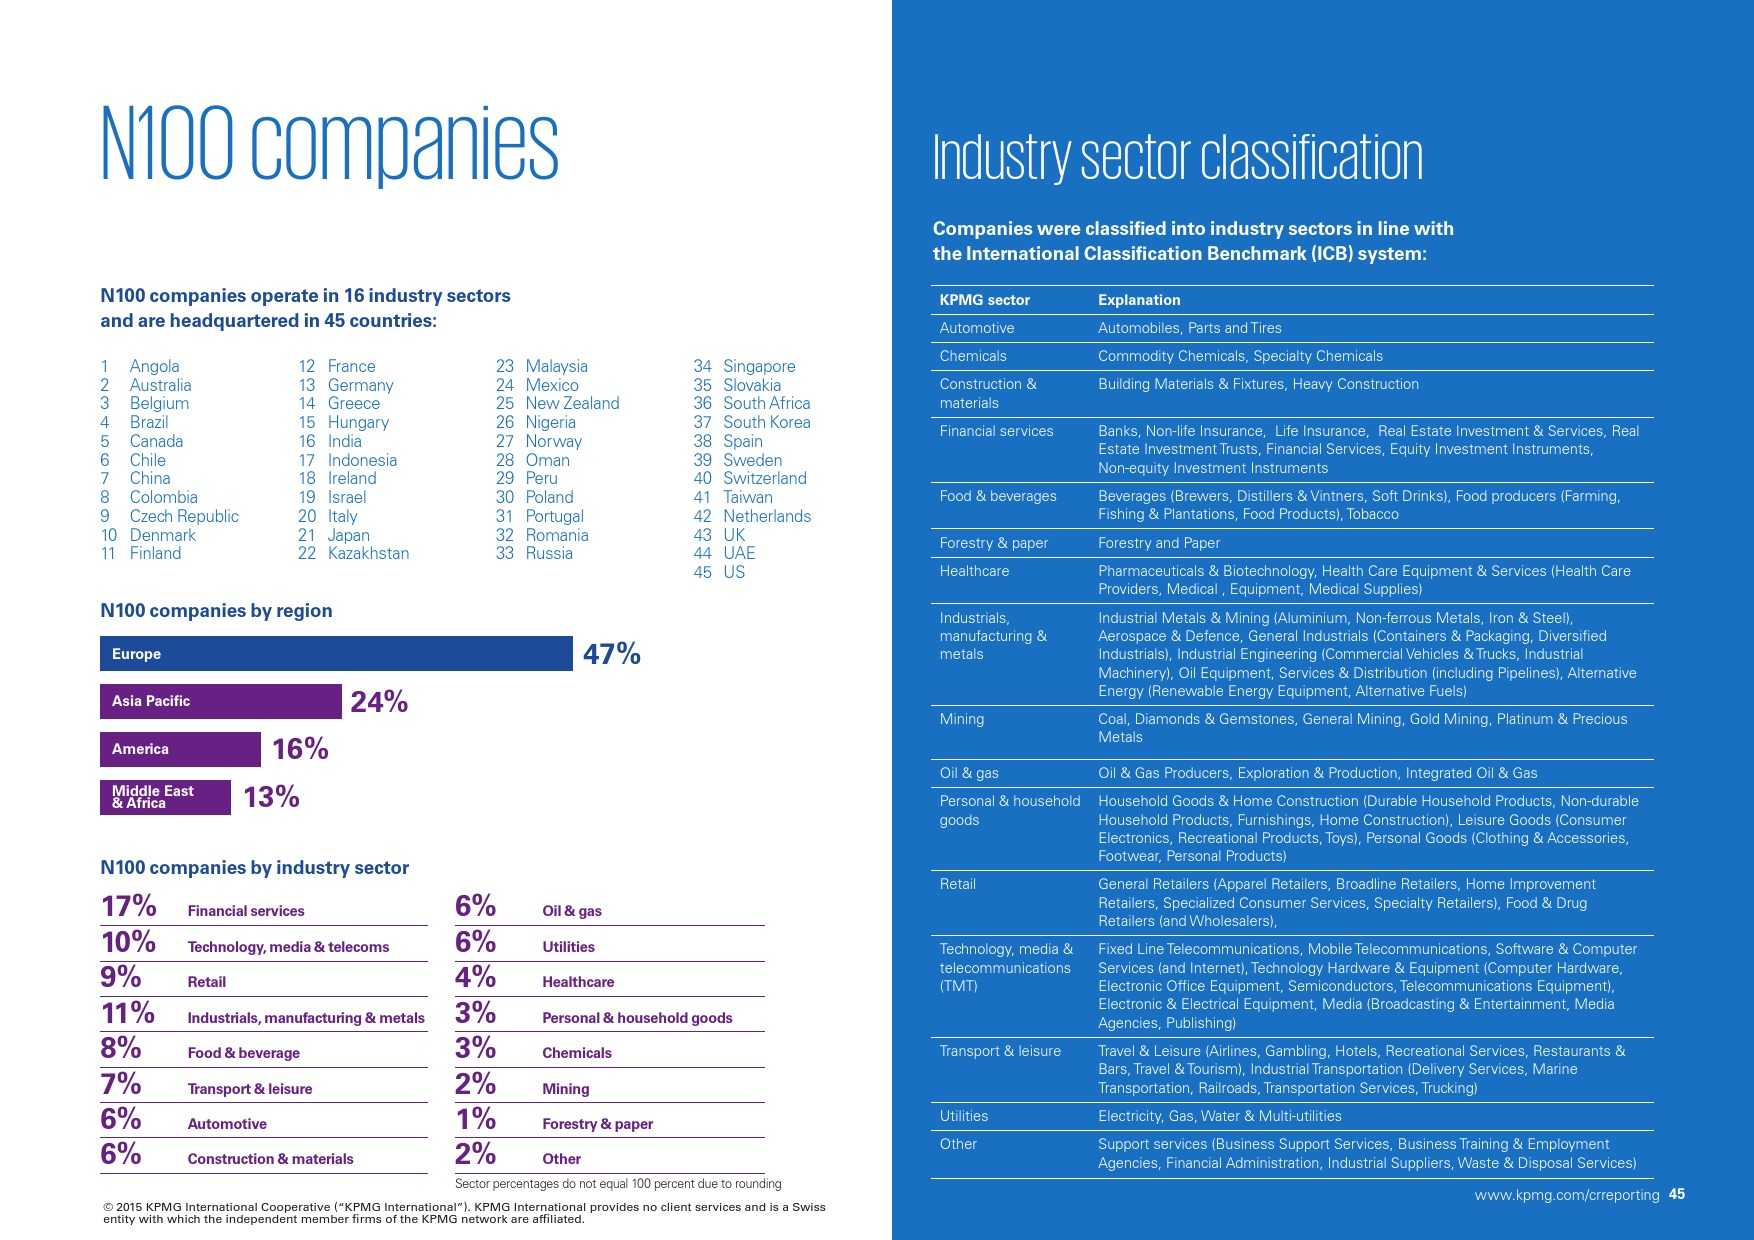 kpmg-international-survey-of-corporate-responsibility-reporting-2015_000045